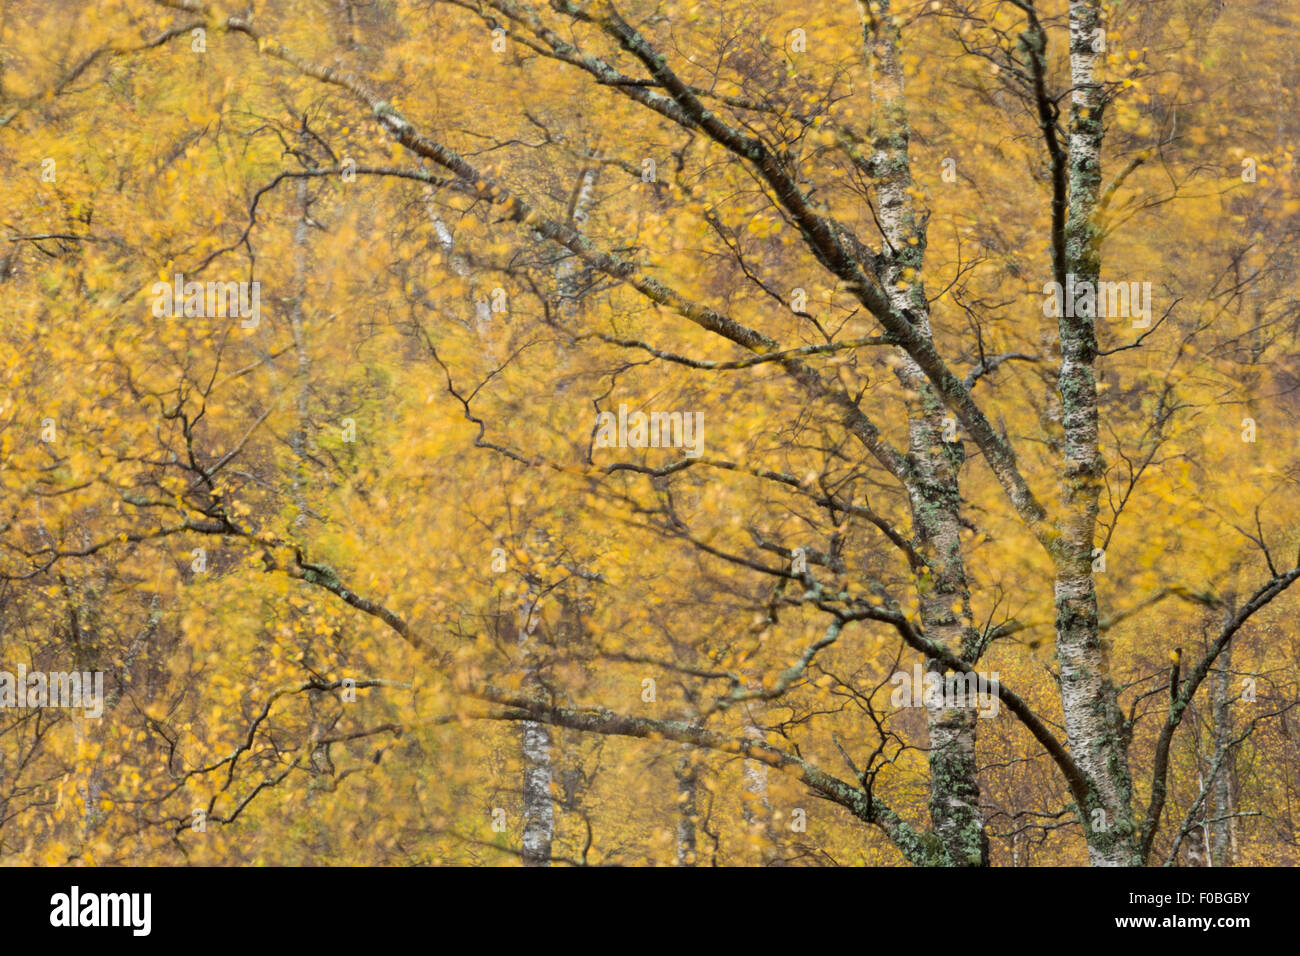 Autumn leaves blowing in wind, Scotland Stock Photo